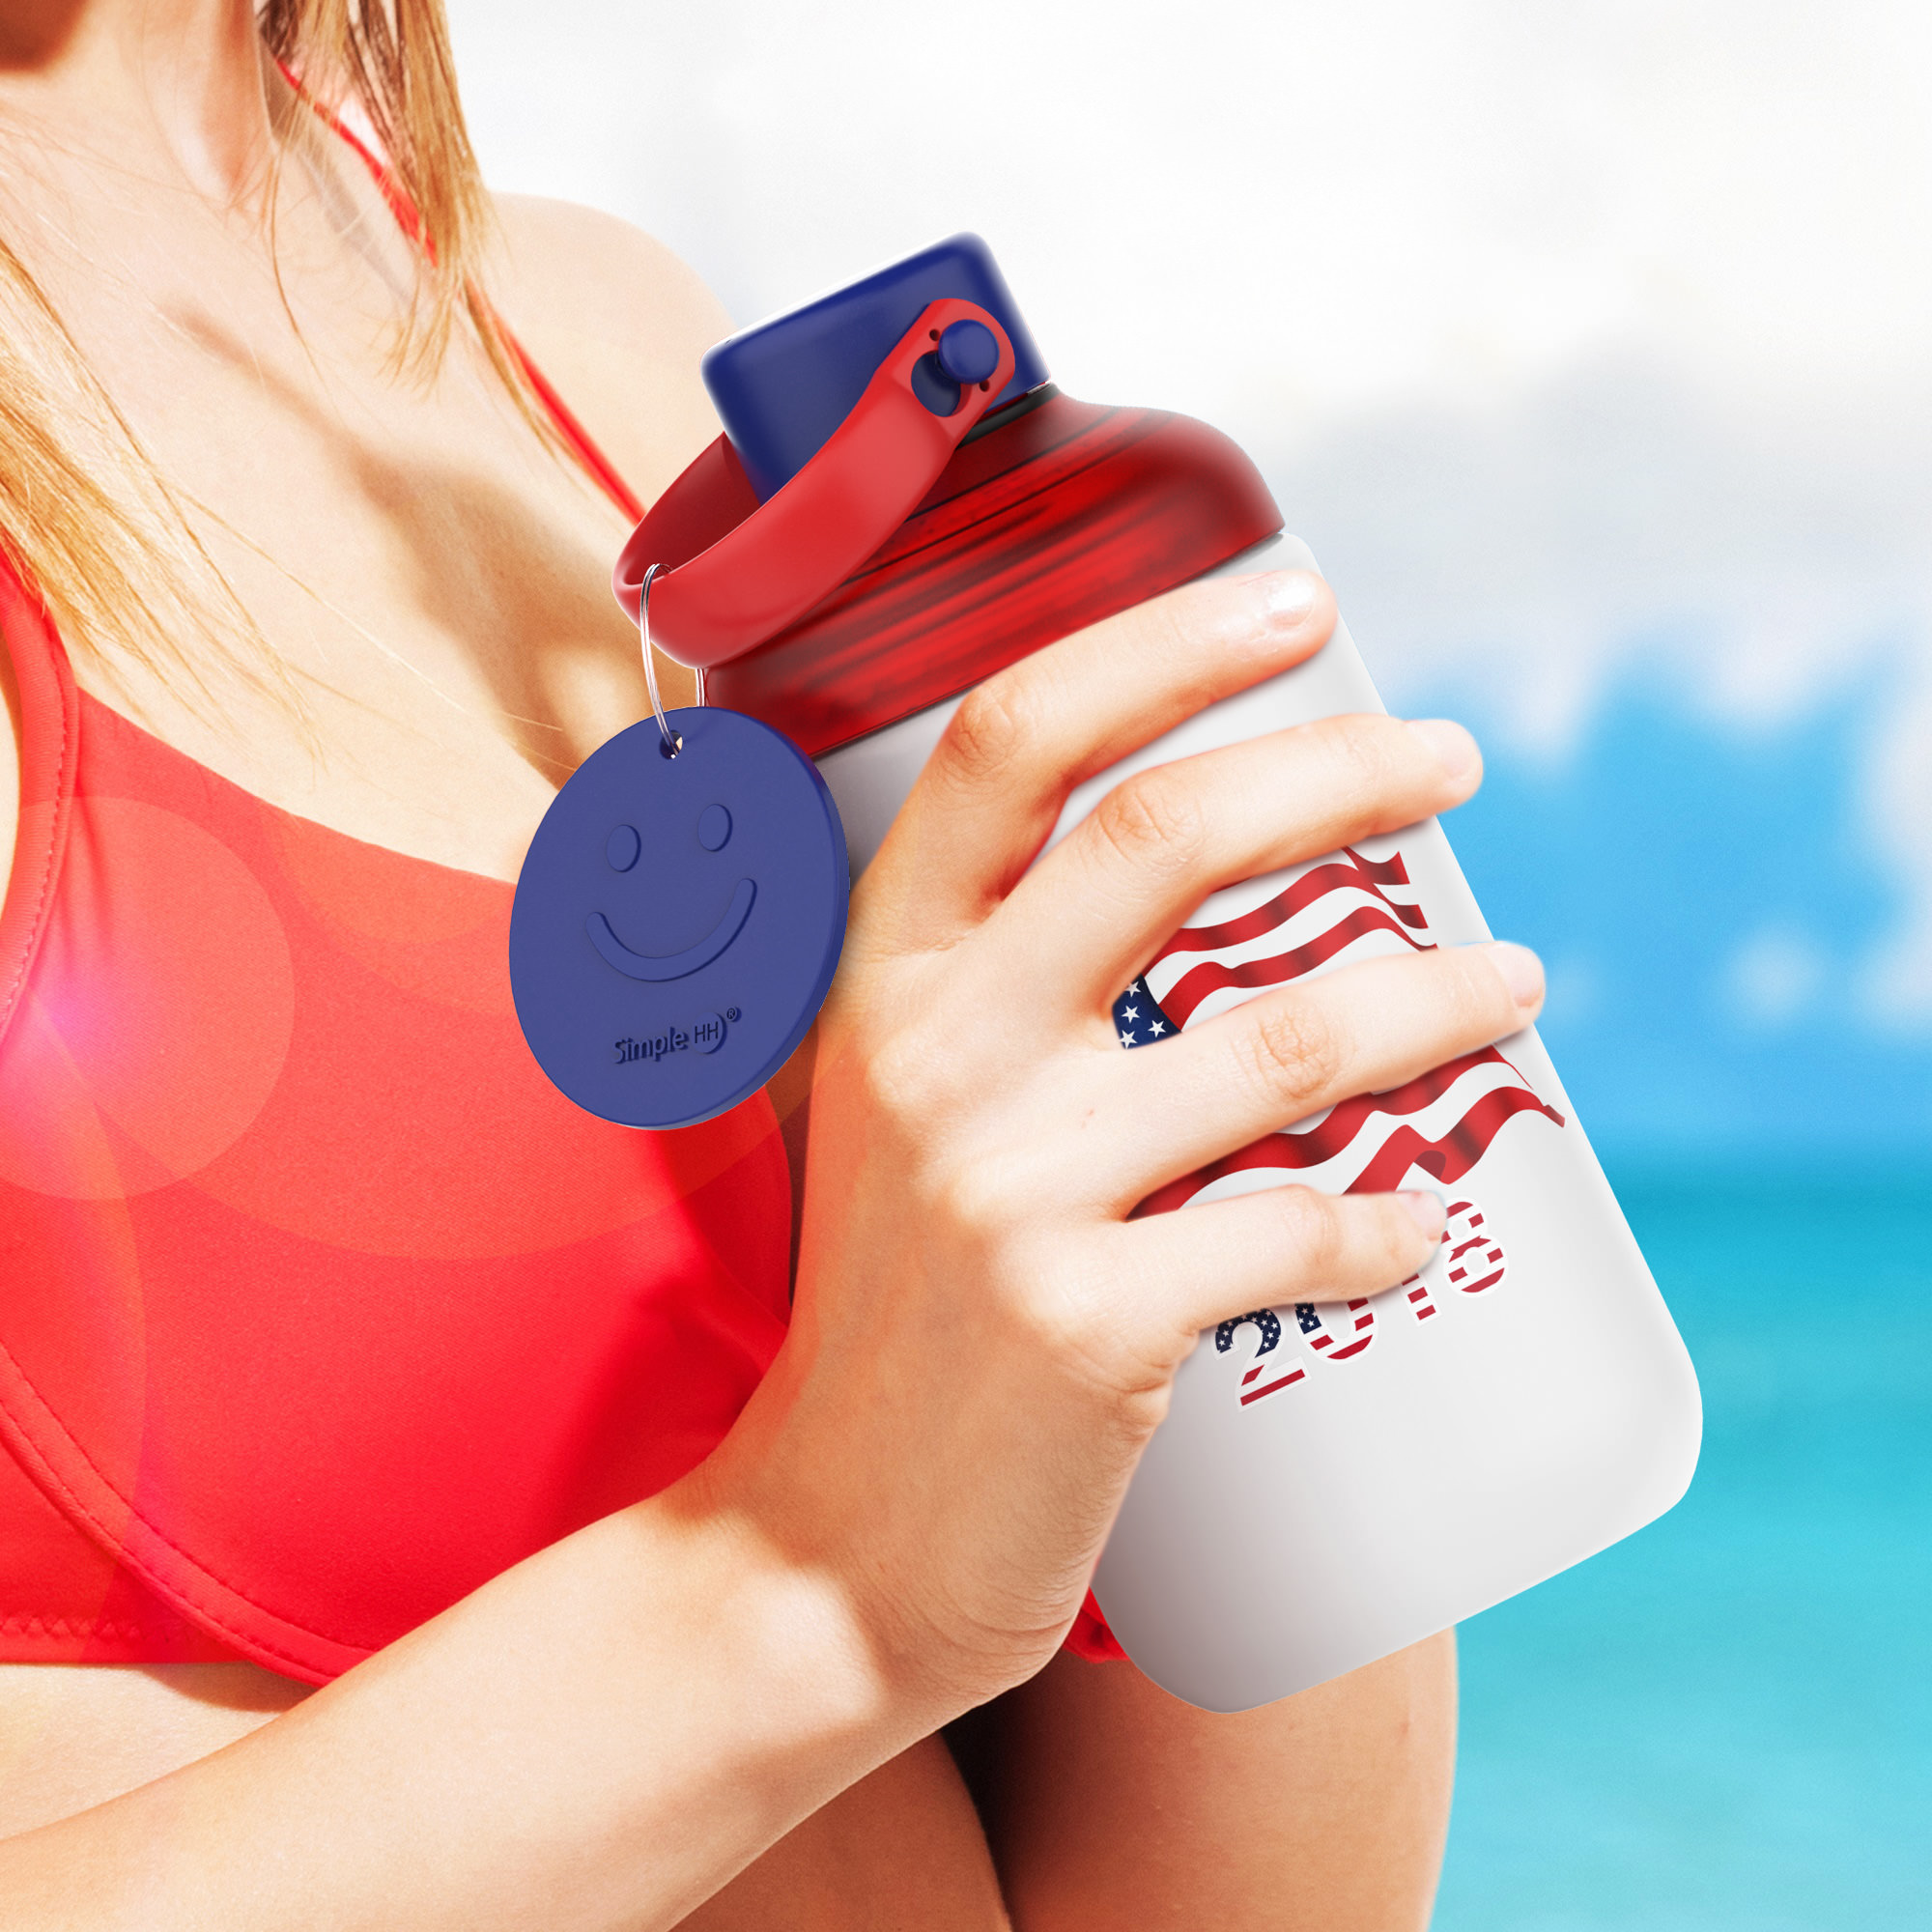 SimpleHH Silicone Glass Water Bottle|16 oz